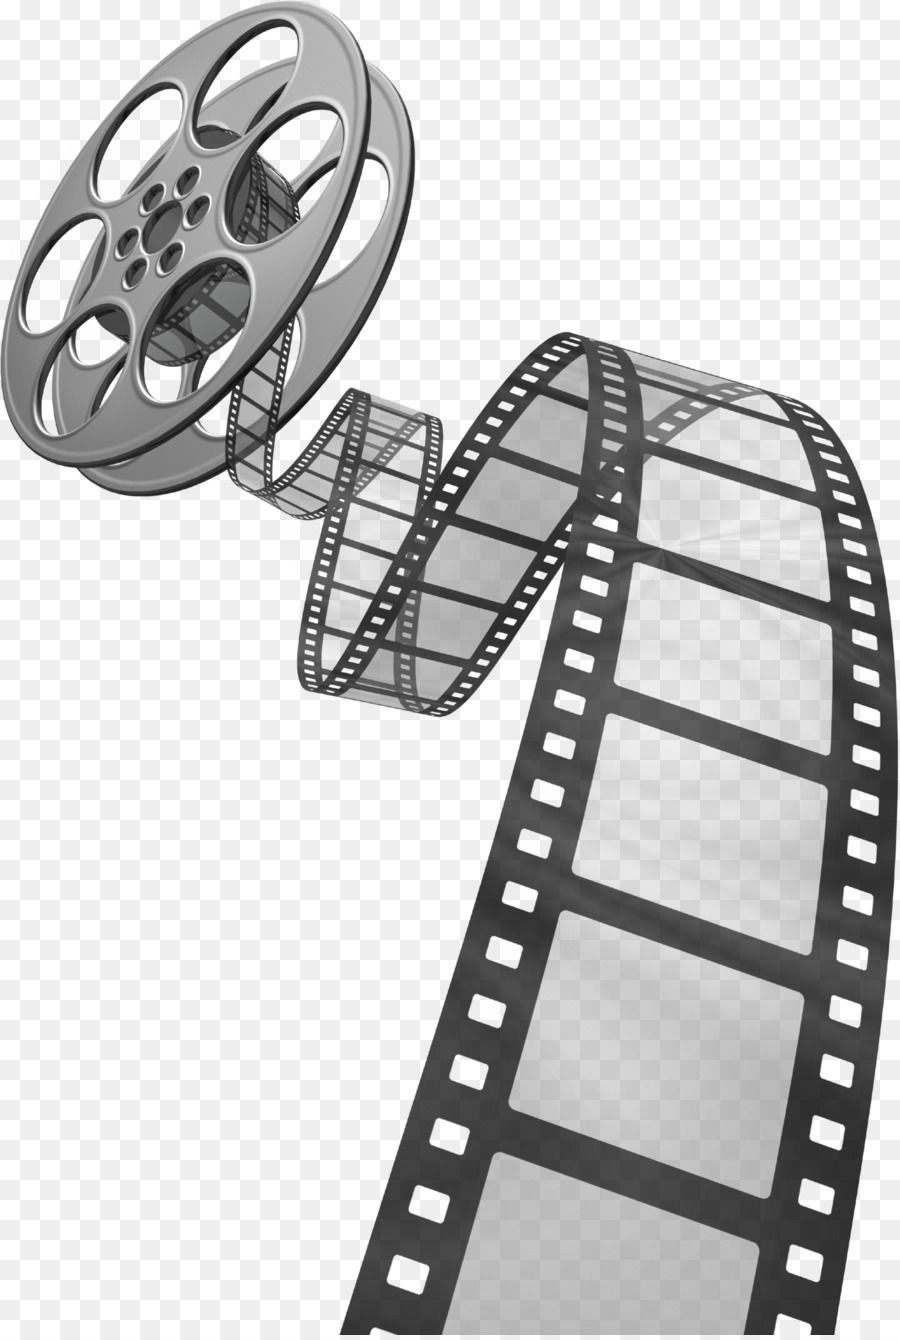 34+ Old movie reel clipart information